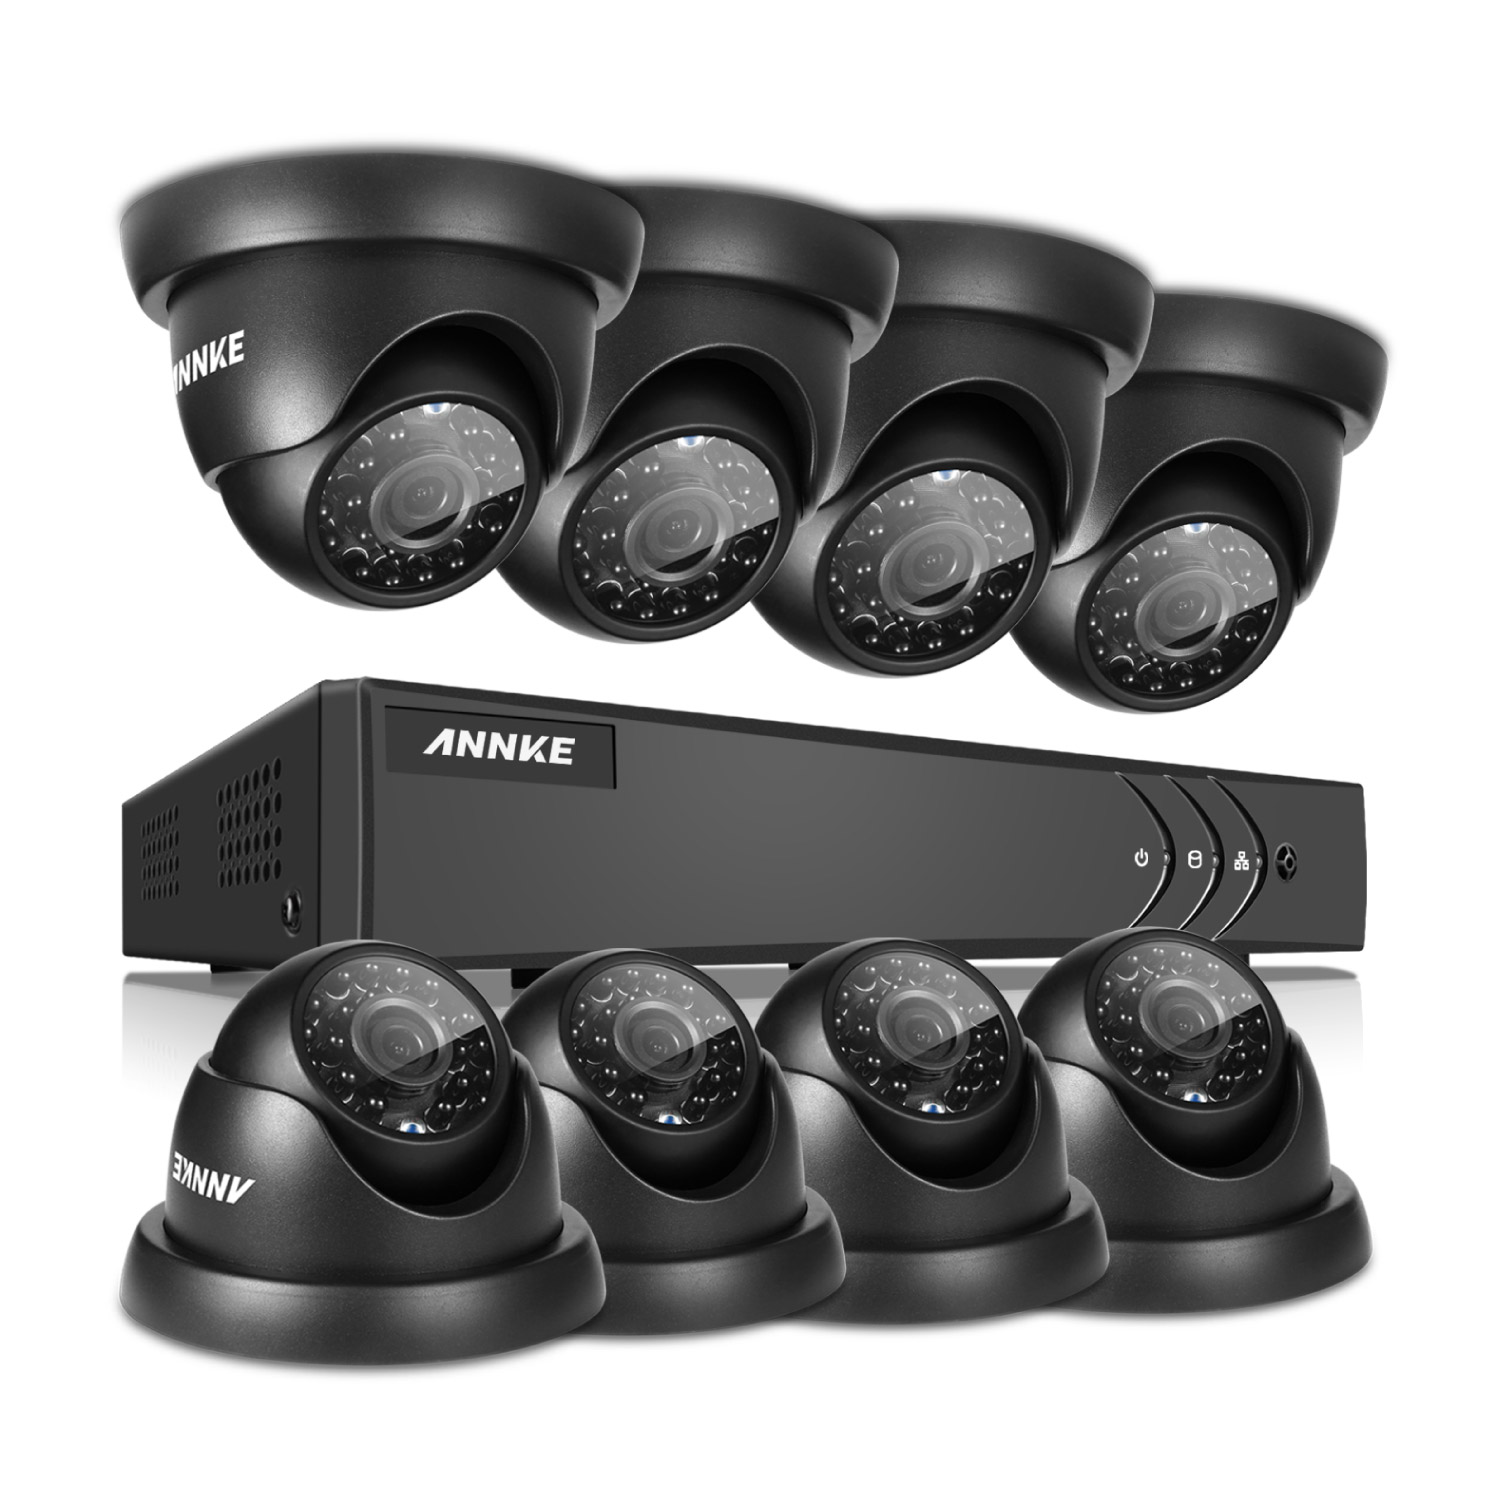 ANNKE Security Camera System 8Pcs 720P AHD Weatherproof Outdoor CCTV Camera  16CH 1080P Video Surveillance kits with NO Hard Drive Disk